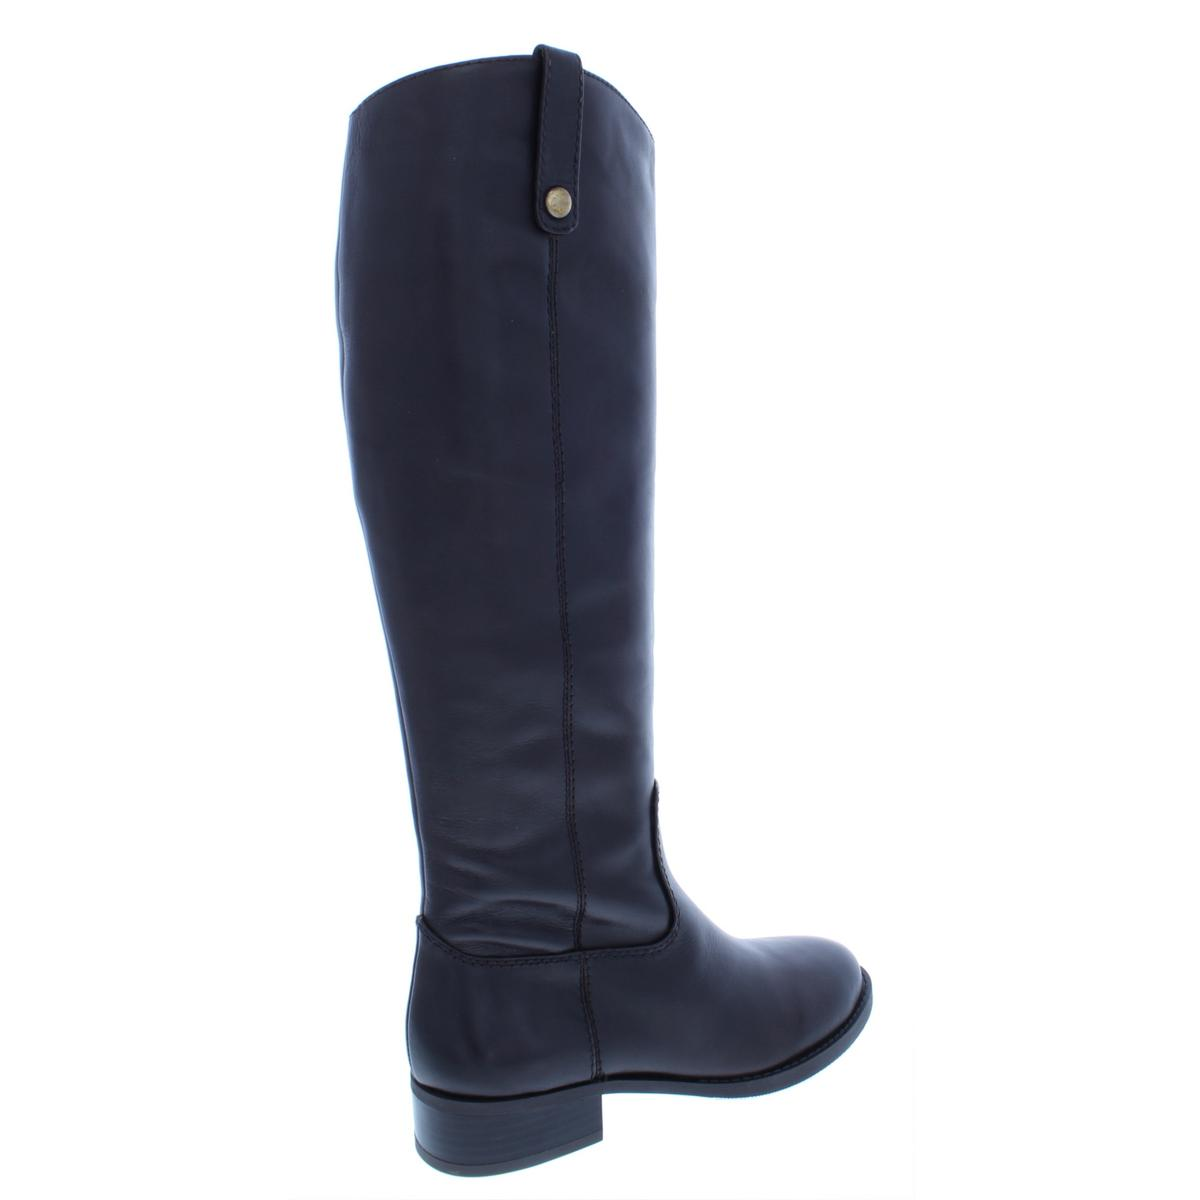 INC-Womens-Fawne-Leather-Knee-High-Tall-Riding-Boots-Shoes-BHFO-5020 thumbnail 6